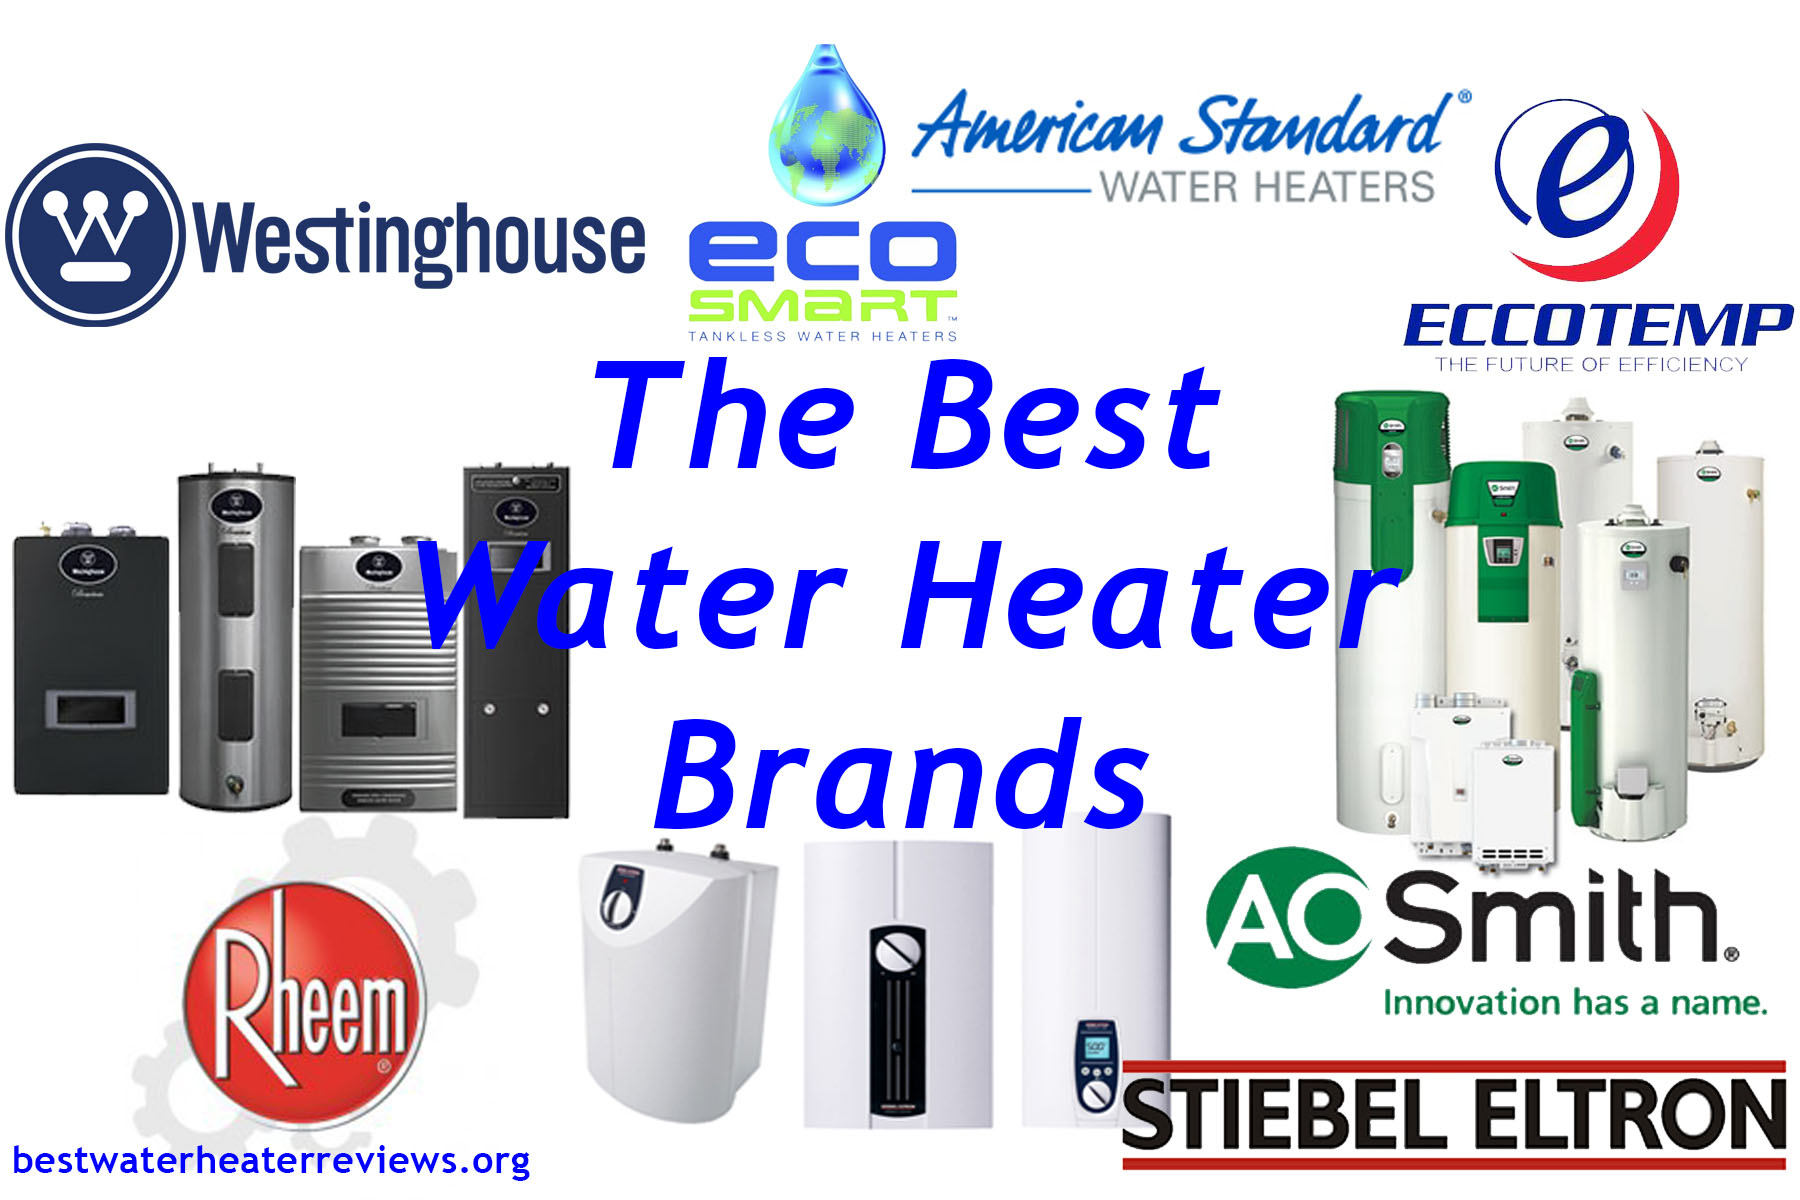 Best water heater brand parkville capl home water for Best home decor brands